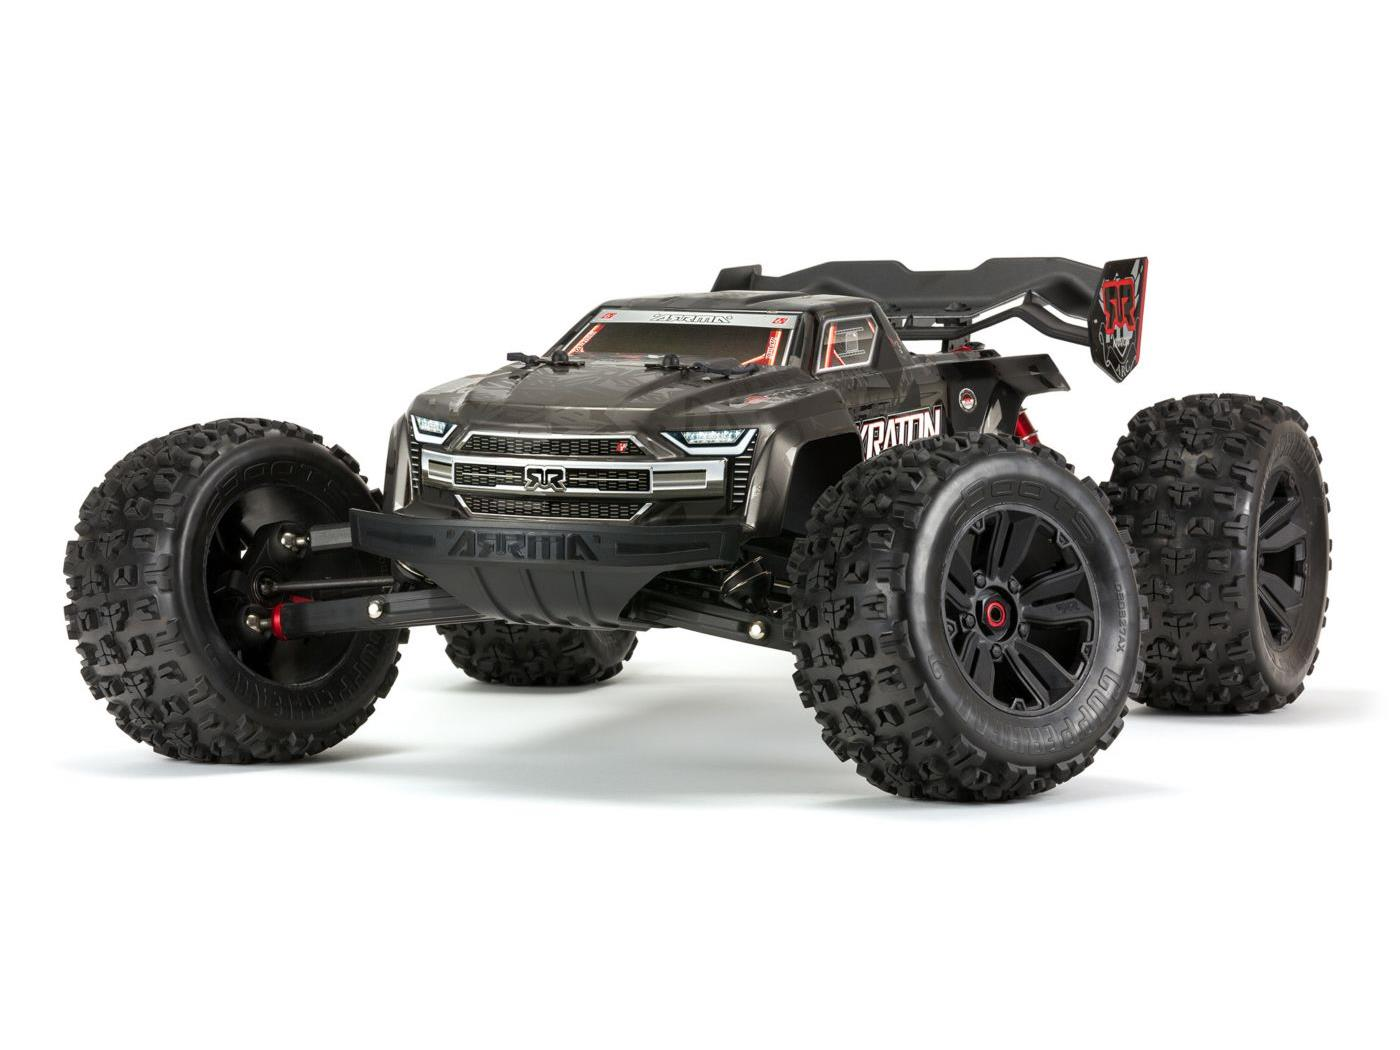 KRATON 1/8 4WD EXB Extreme Bash Roller Speed Black